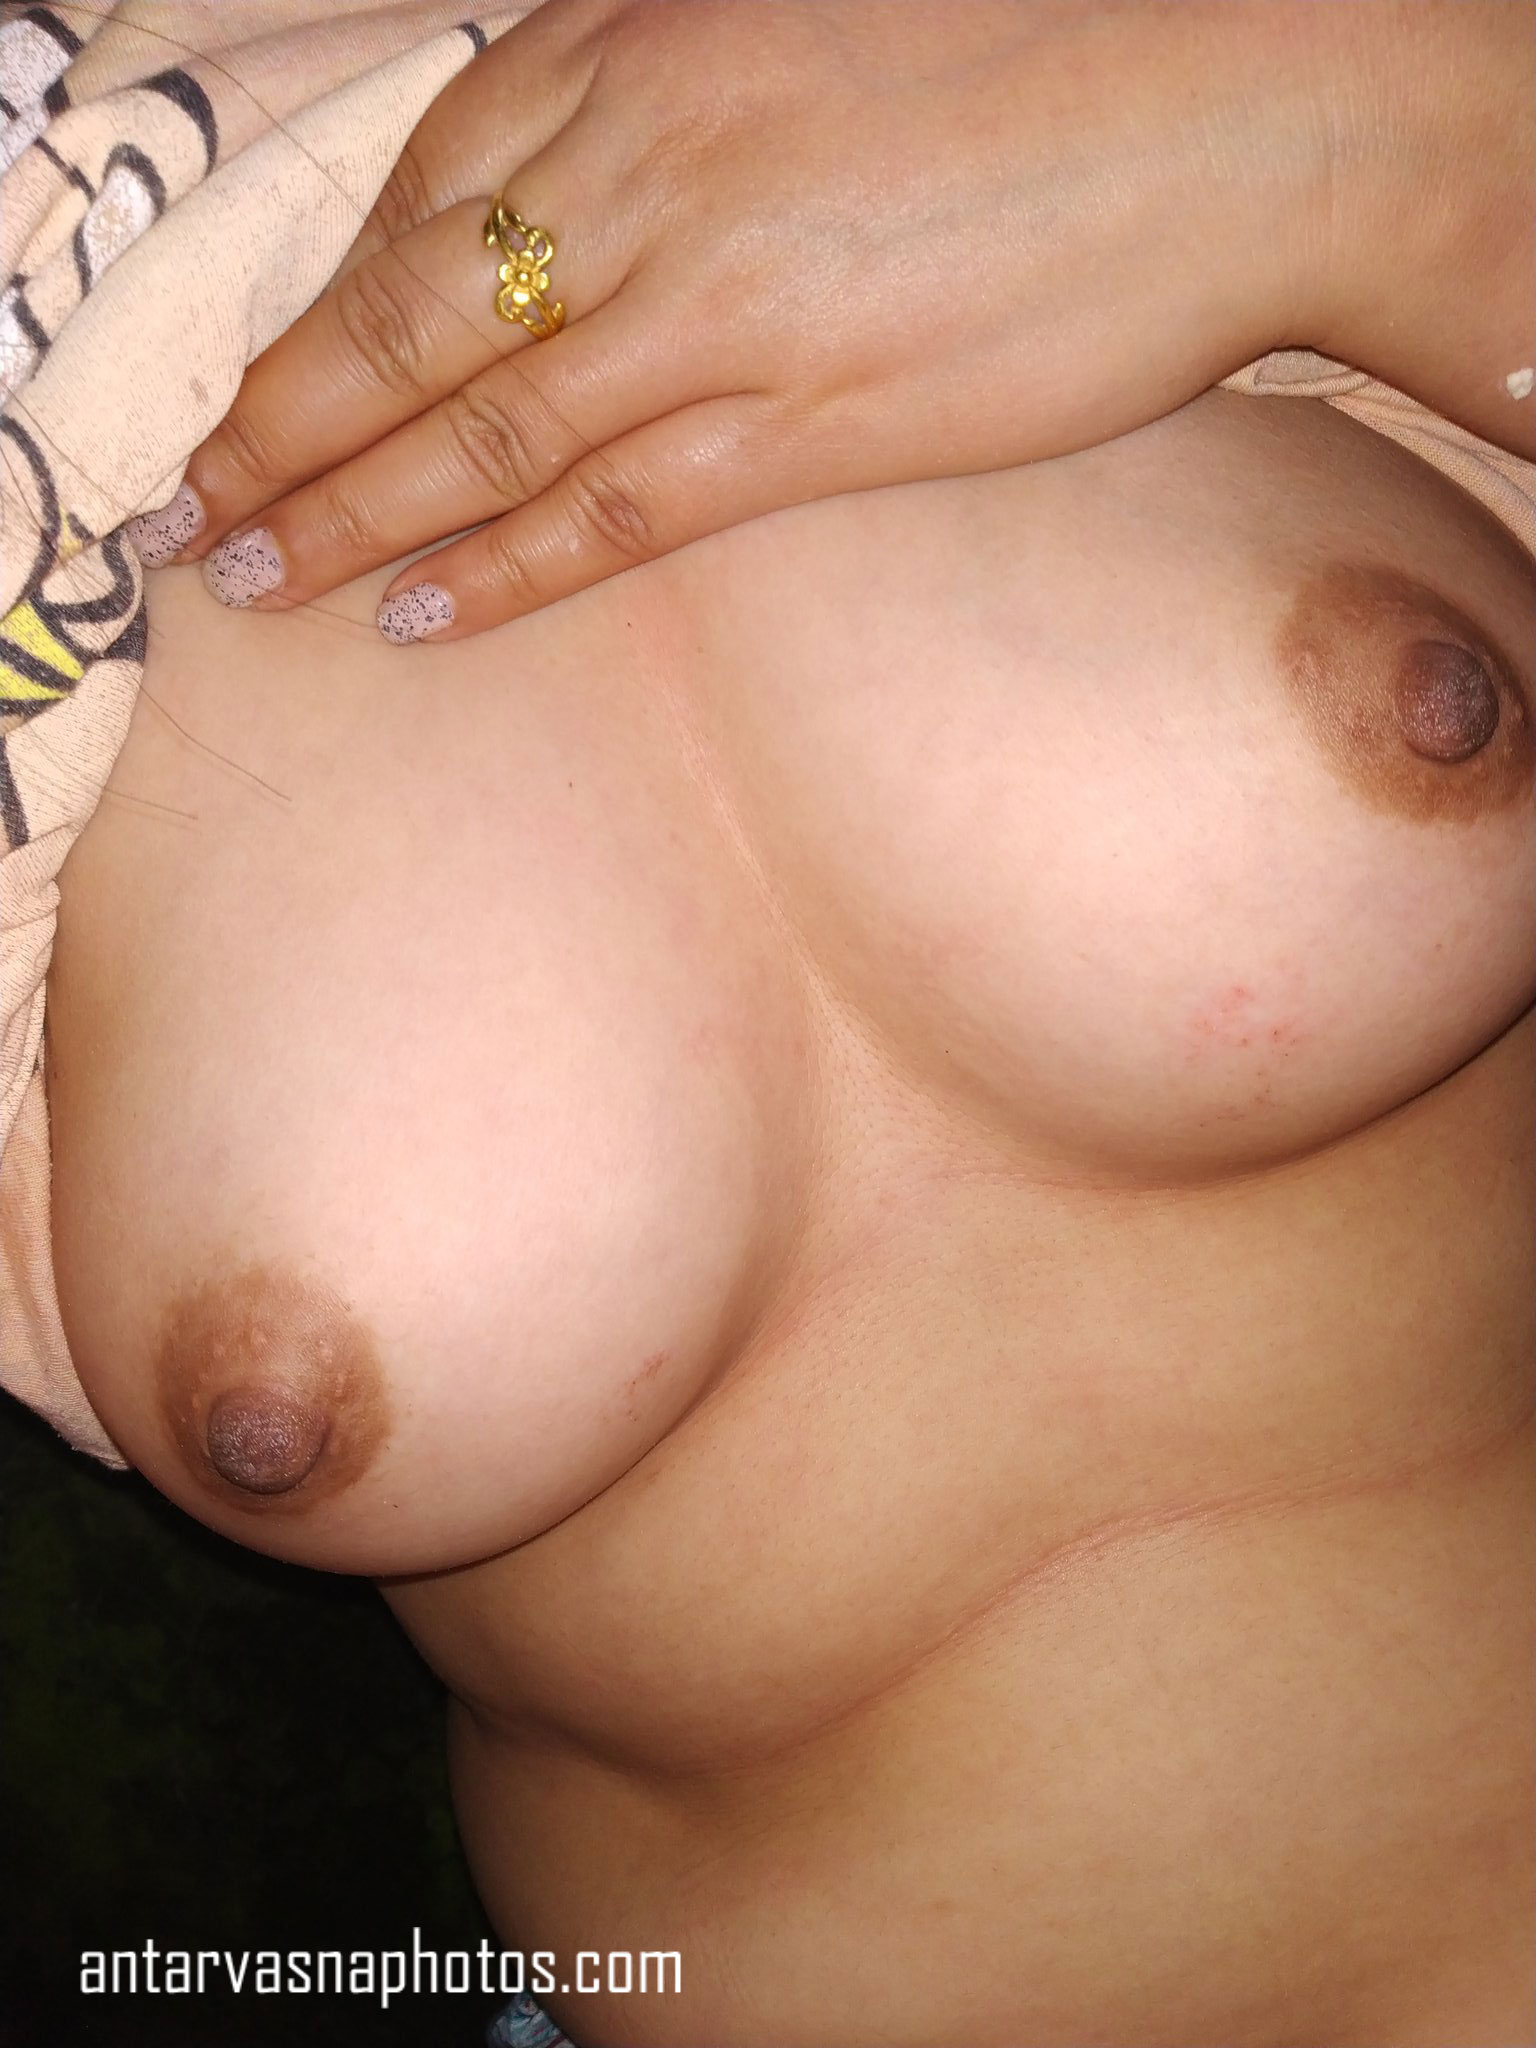 Boobs images